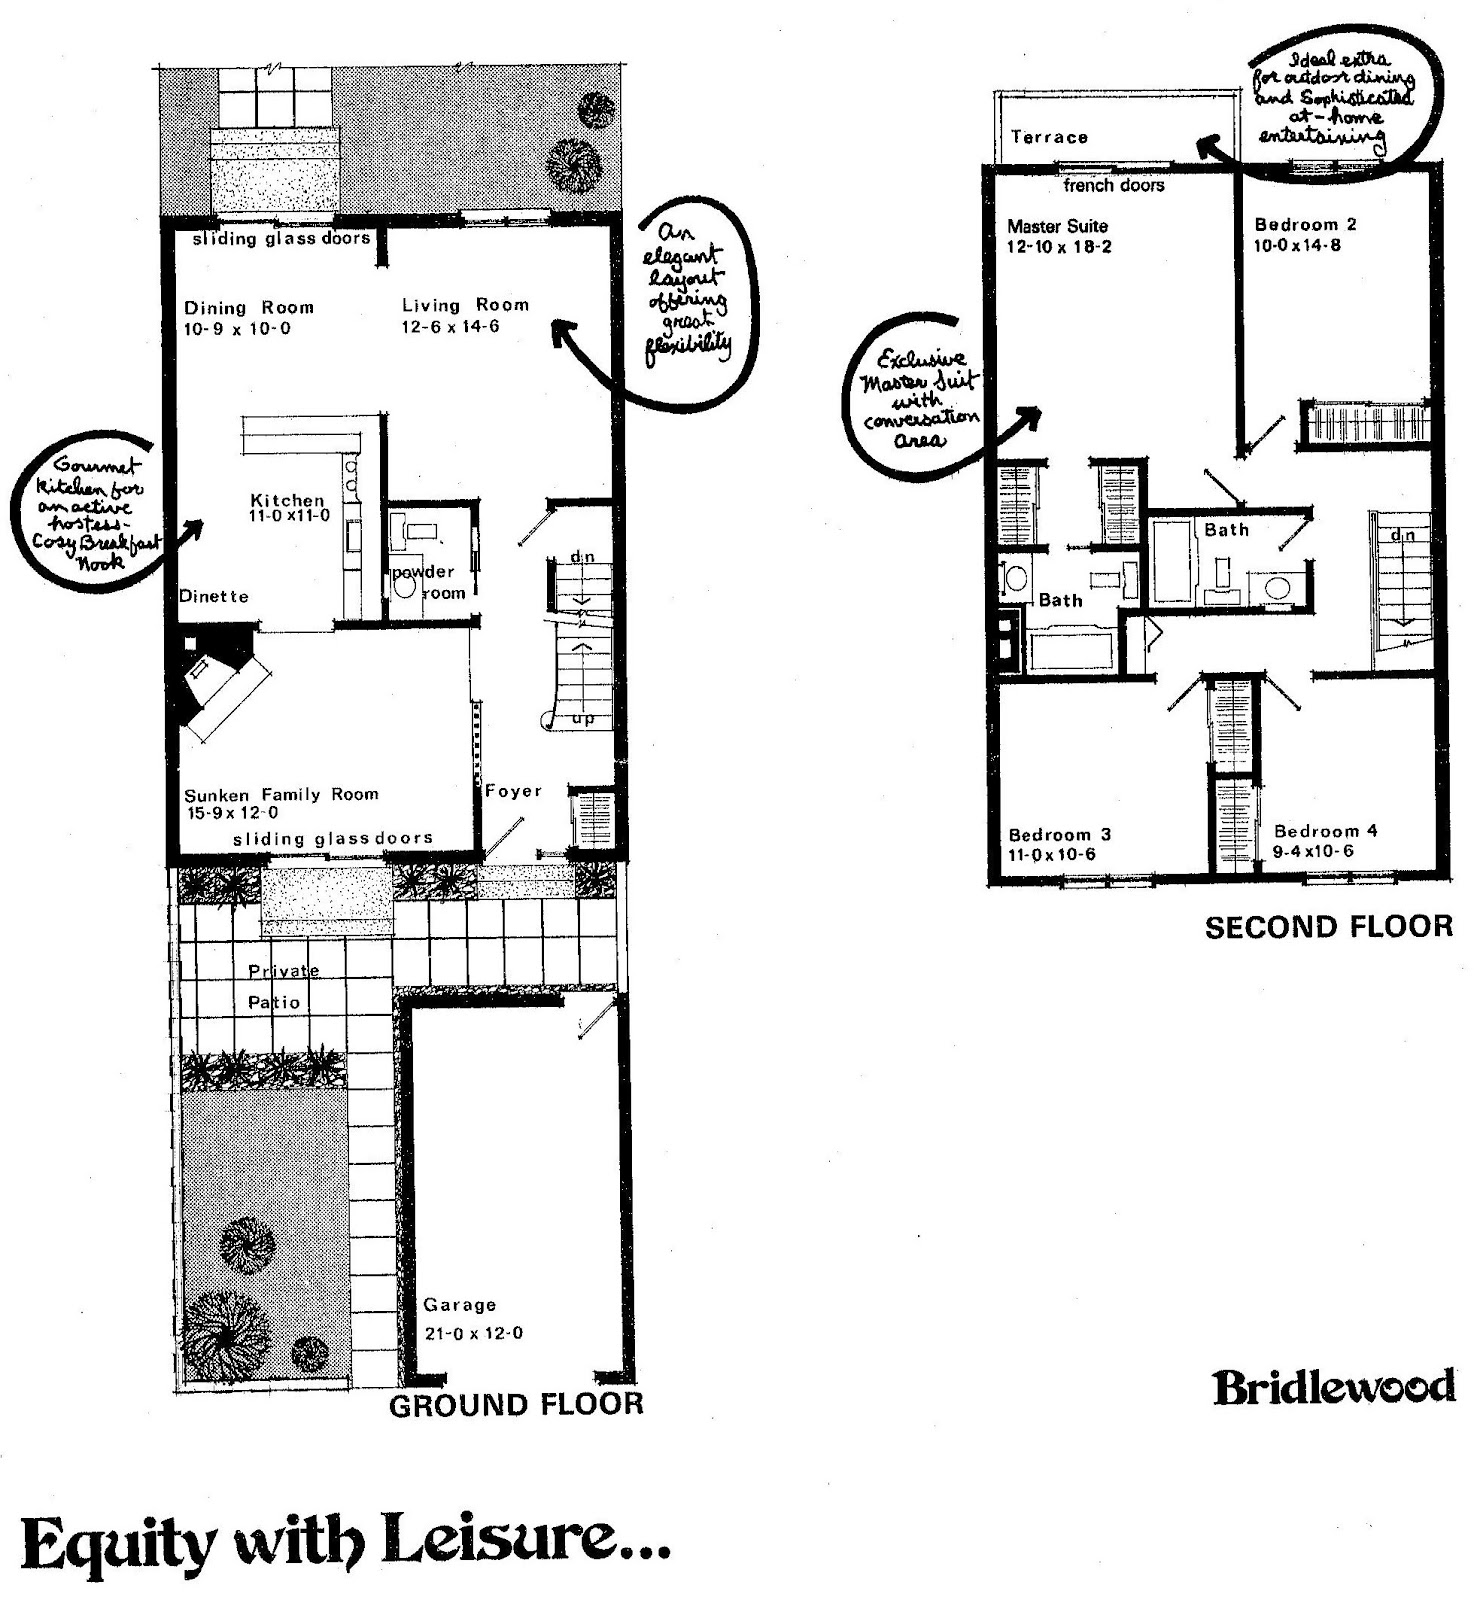 013 Split Level House Plans Designs on beach house plans, duplex house plans, split foyer house plans, single level house plans, rancher house plans, aframe house plans, cape cod house plans, split bedroom house plans, traditional house plans, multi-level house plans, luxury house plans, townhouse house plans, tudor house plans, contemporary house plans, tri-level house plans, bungalow house plans, colonial house plans, cottage house plans, saltbox house plans,